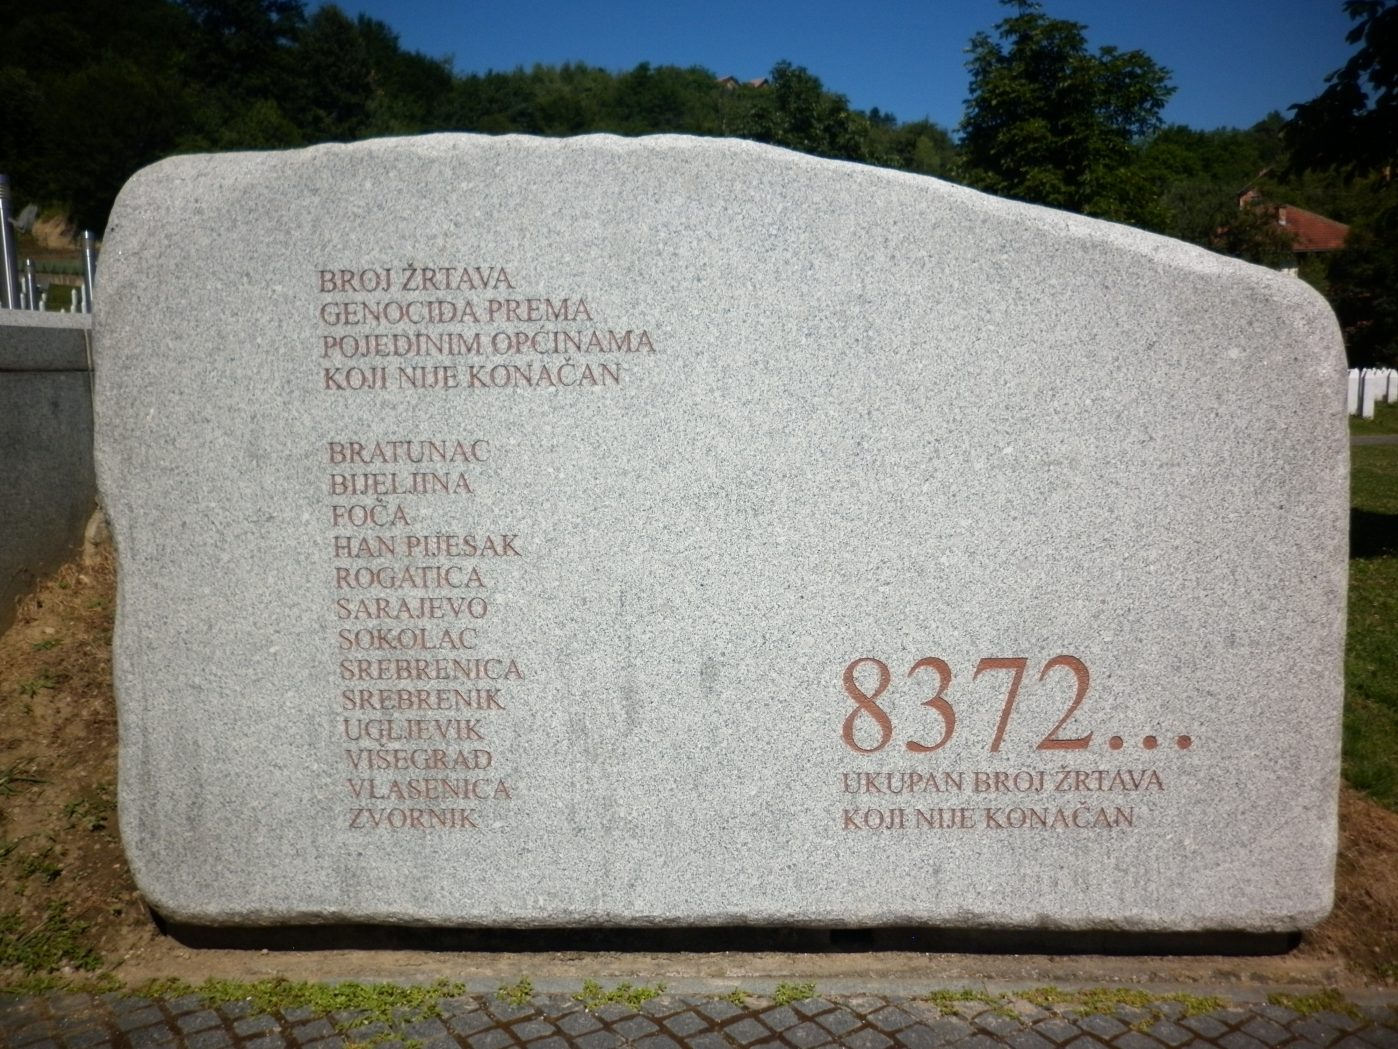 SREBRENICA: Justice delayed and denied, but not forgotten by Yvonne Ridley